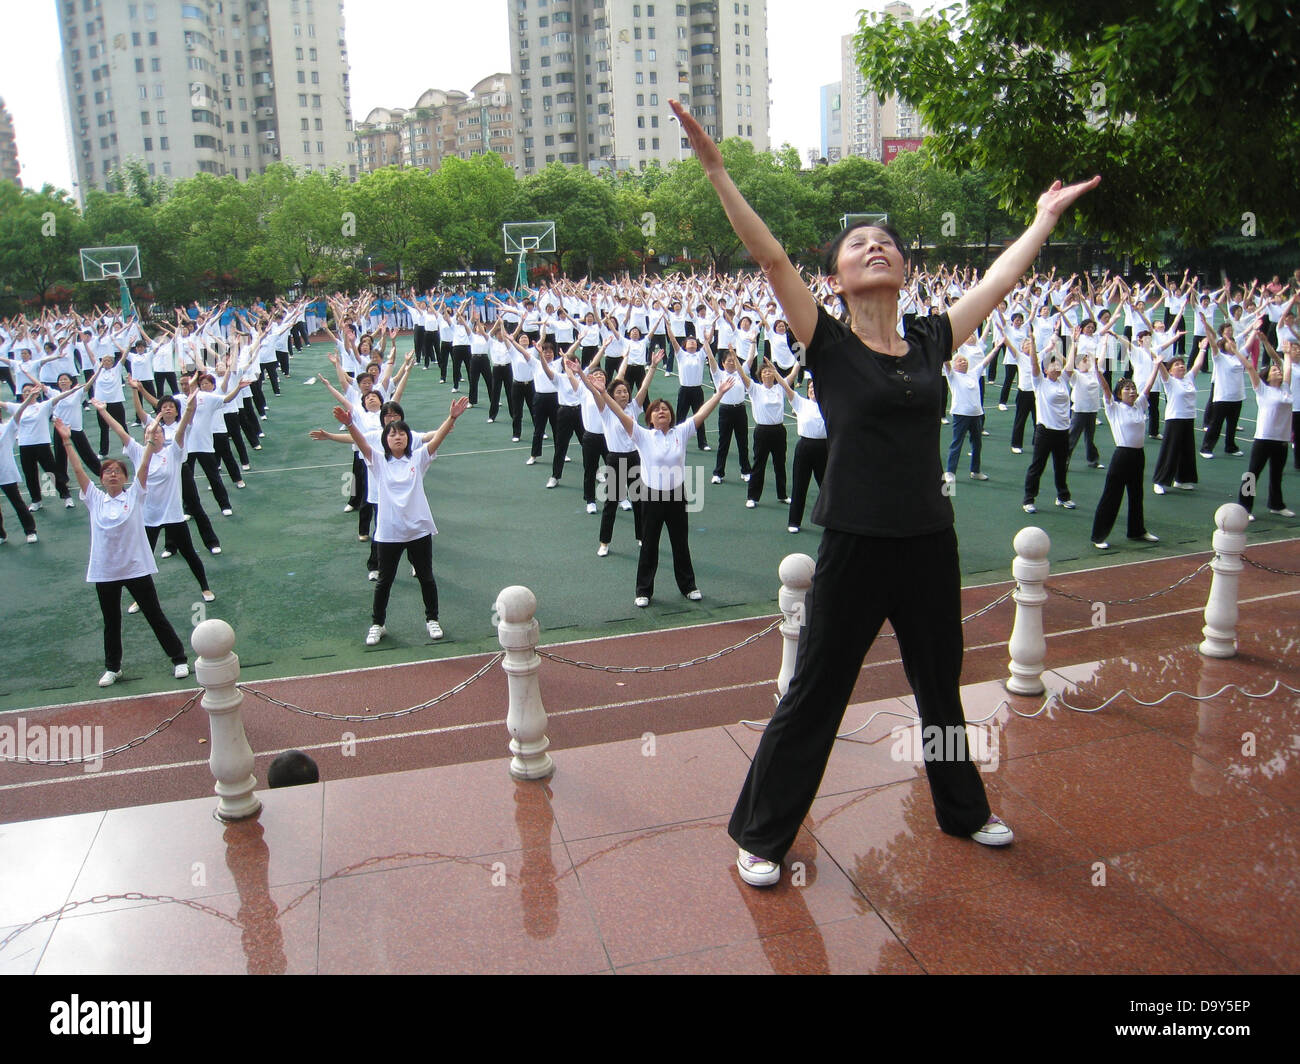 shanghai life community exercise exercises sports - Stock Image